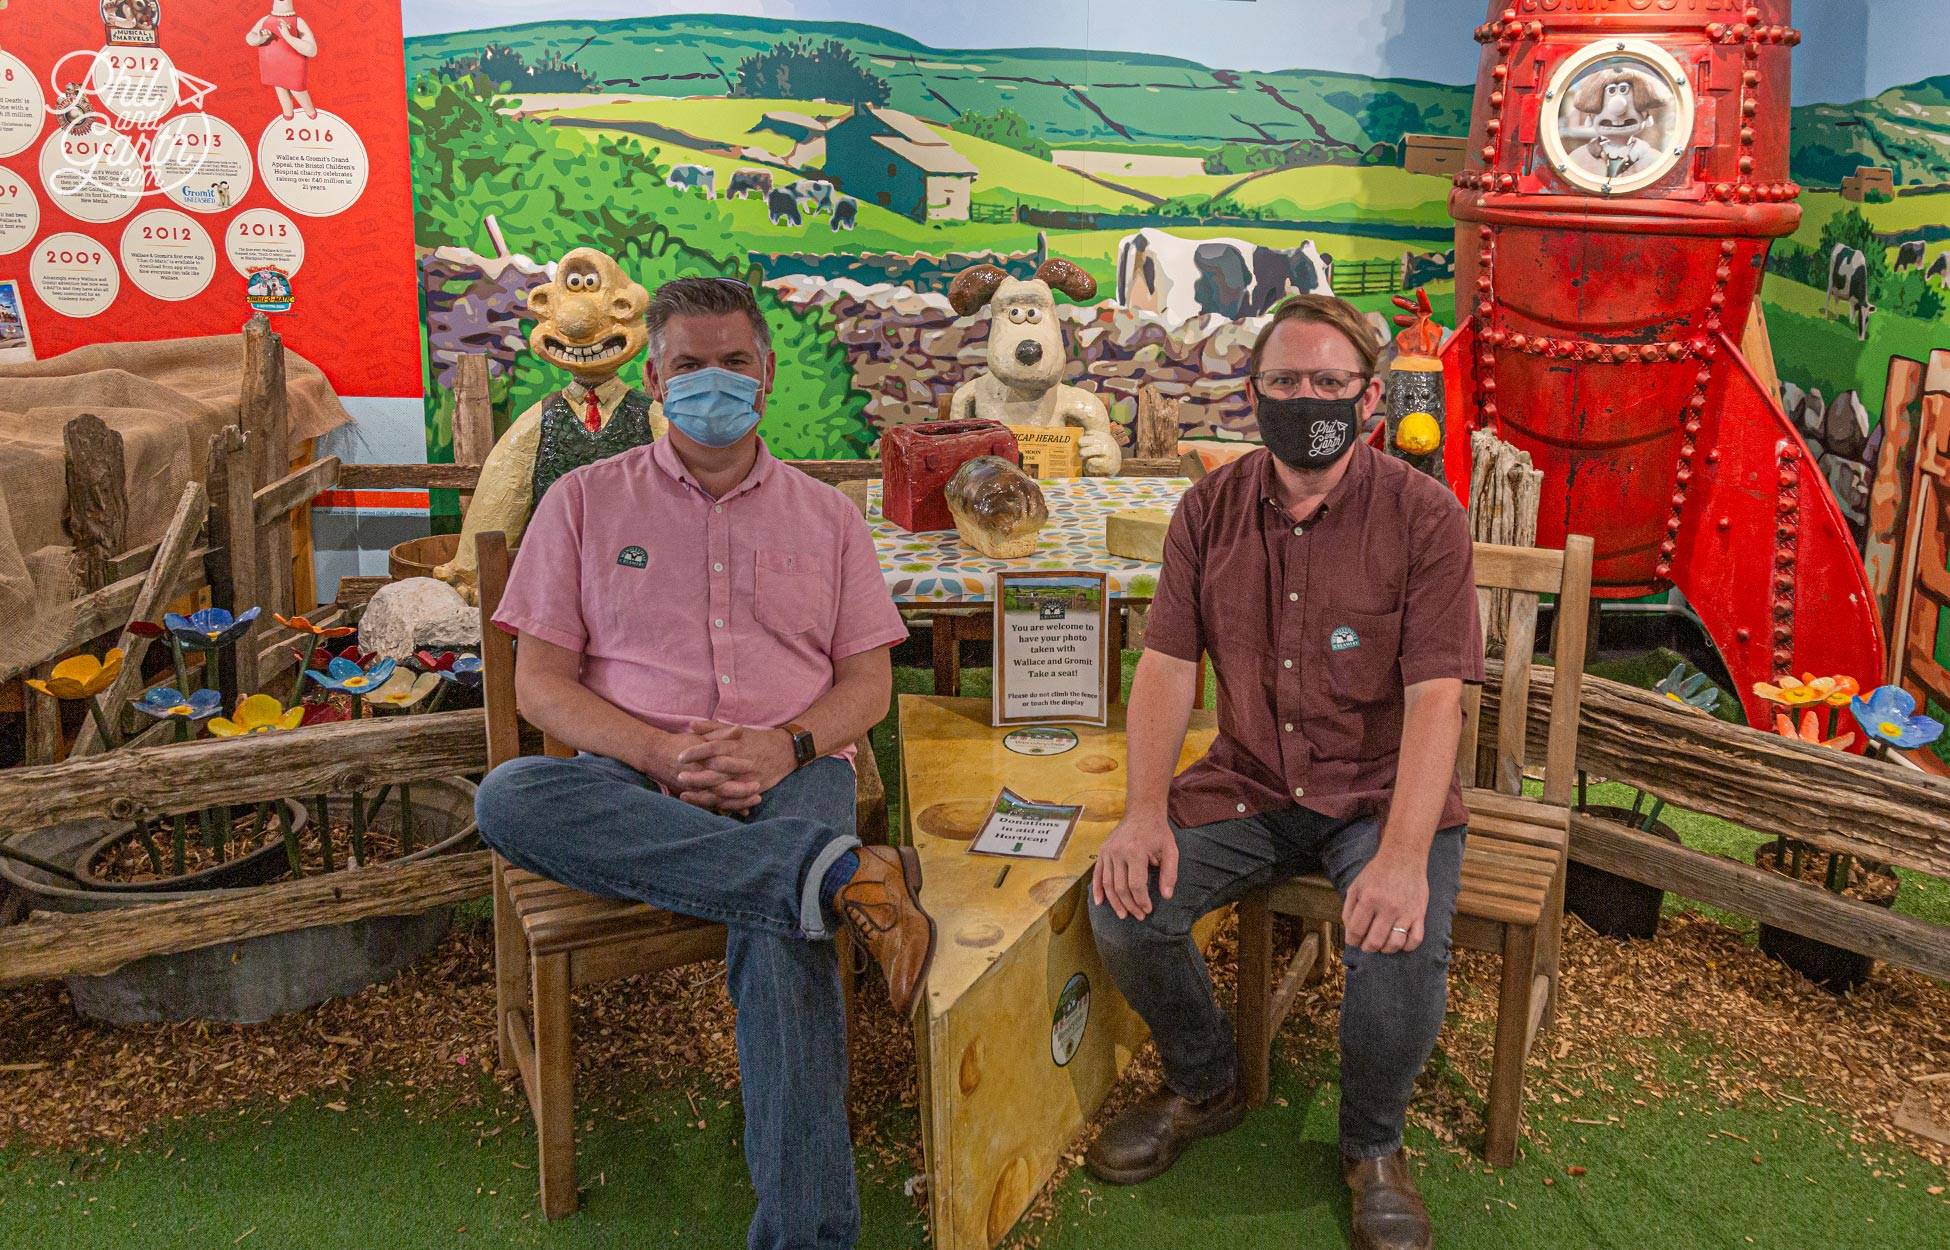 We are smiling under the masks! The must have photo with Wallace and Gromit at the Wensleydale Creamery